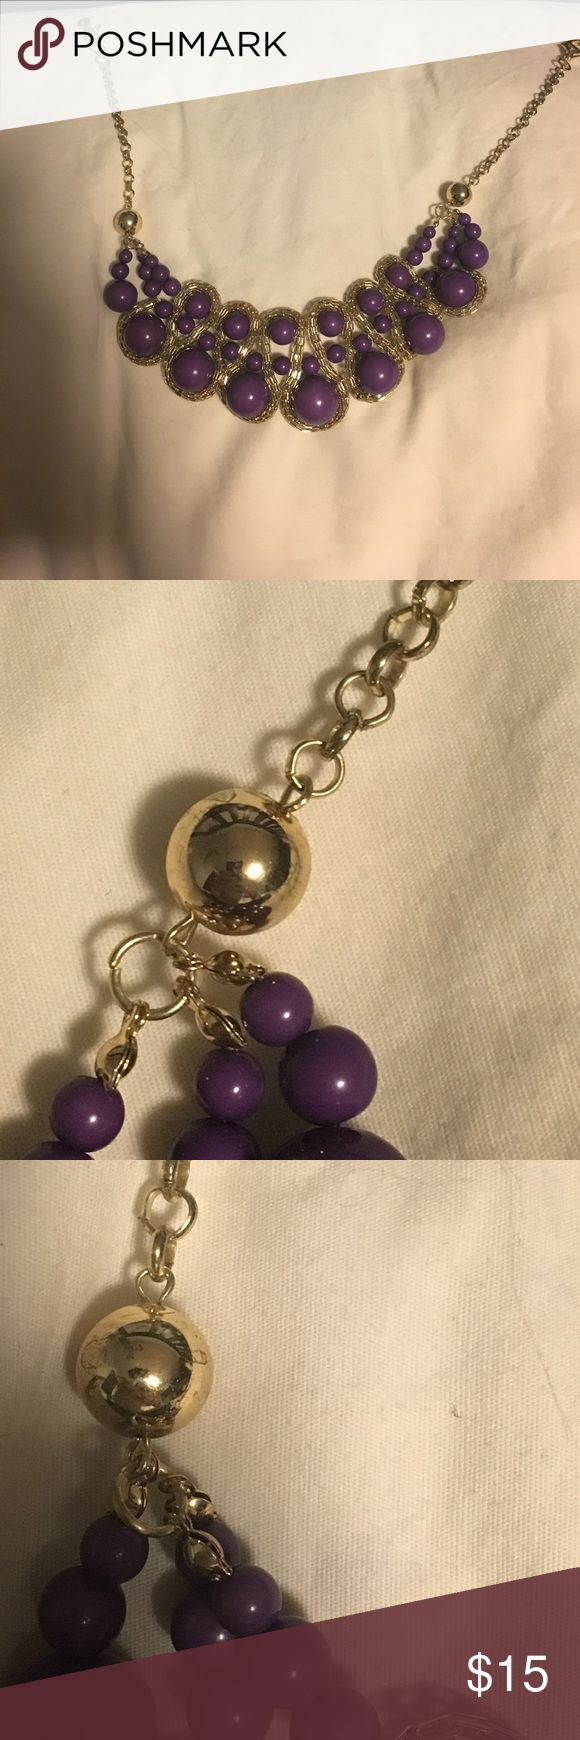 Amrita Singh Purple Statement Necklace Purple and gold. Some tarnishing on gold part of necklace(see pictures). The statement part of the necklace is in excellent condition. Worn lightly with love. Great necklace. Amrita Singh Jewelry Necklaces